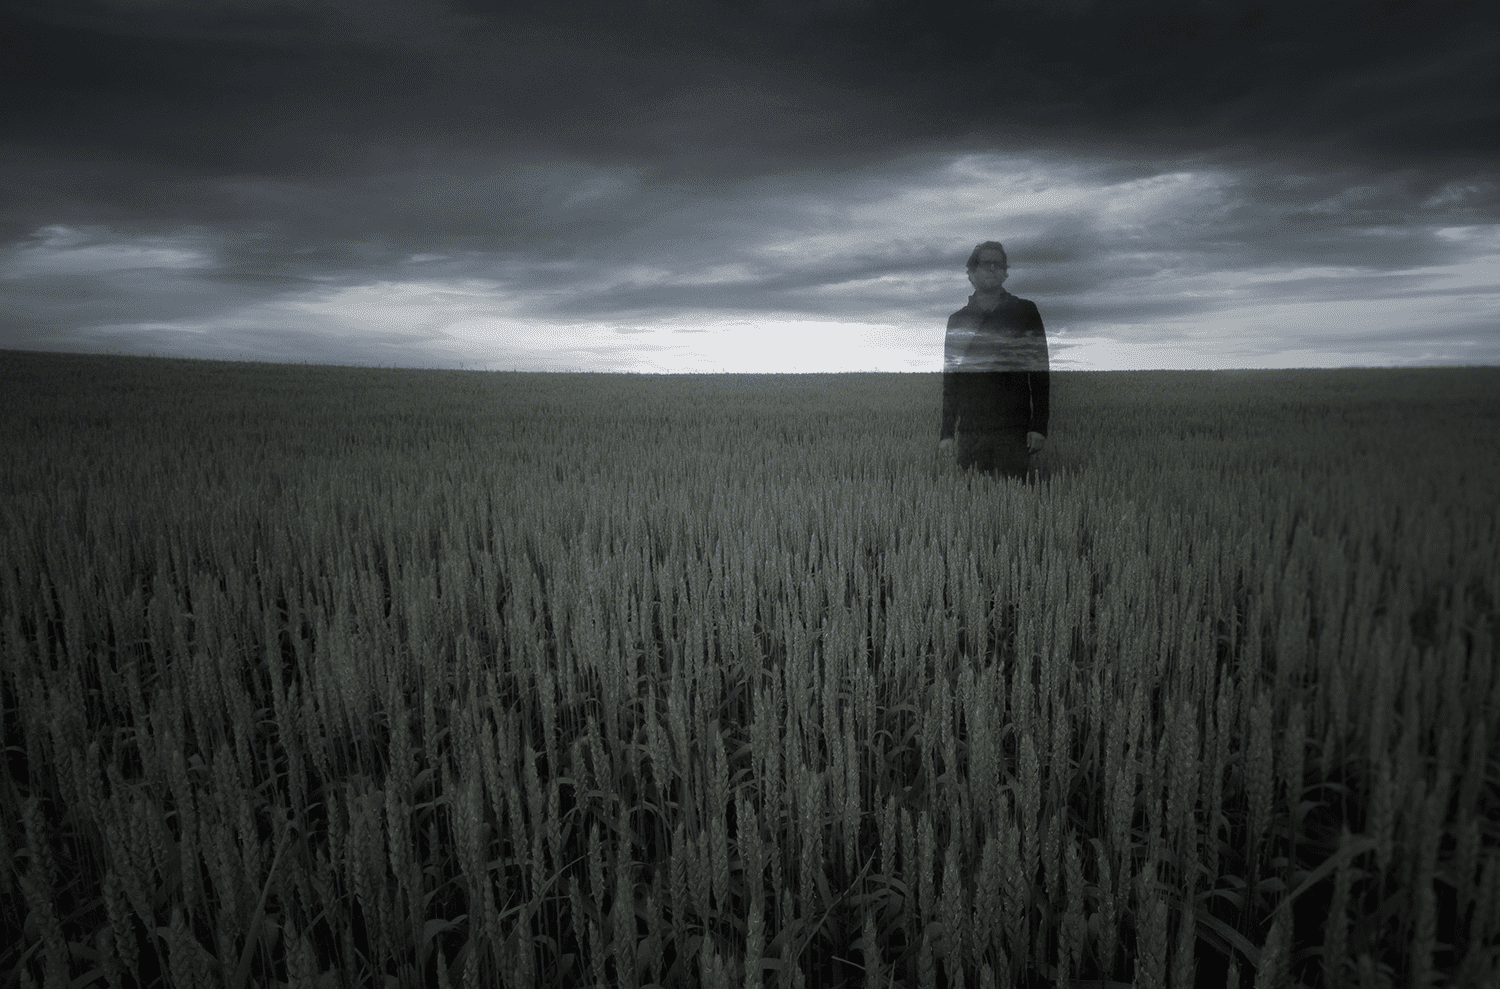 Stories of People Disappearing or Vanishing